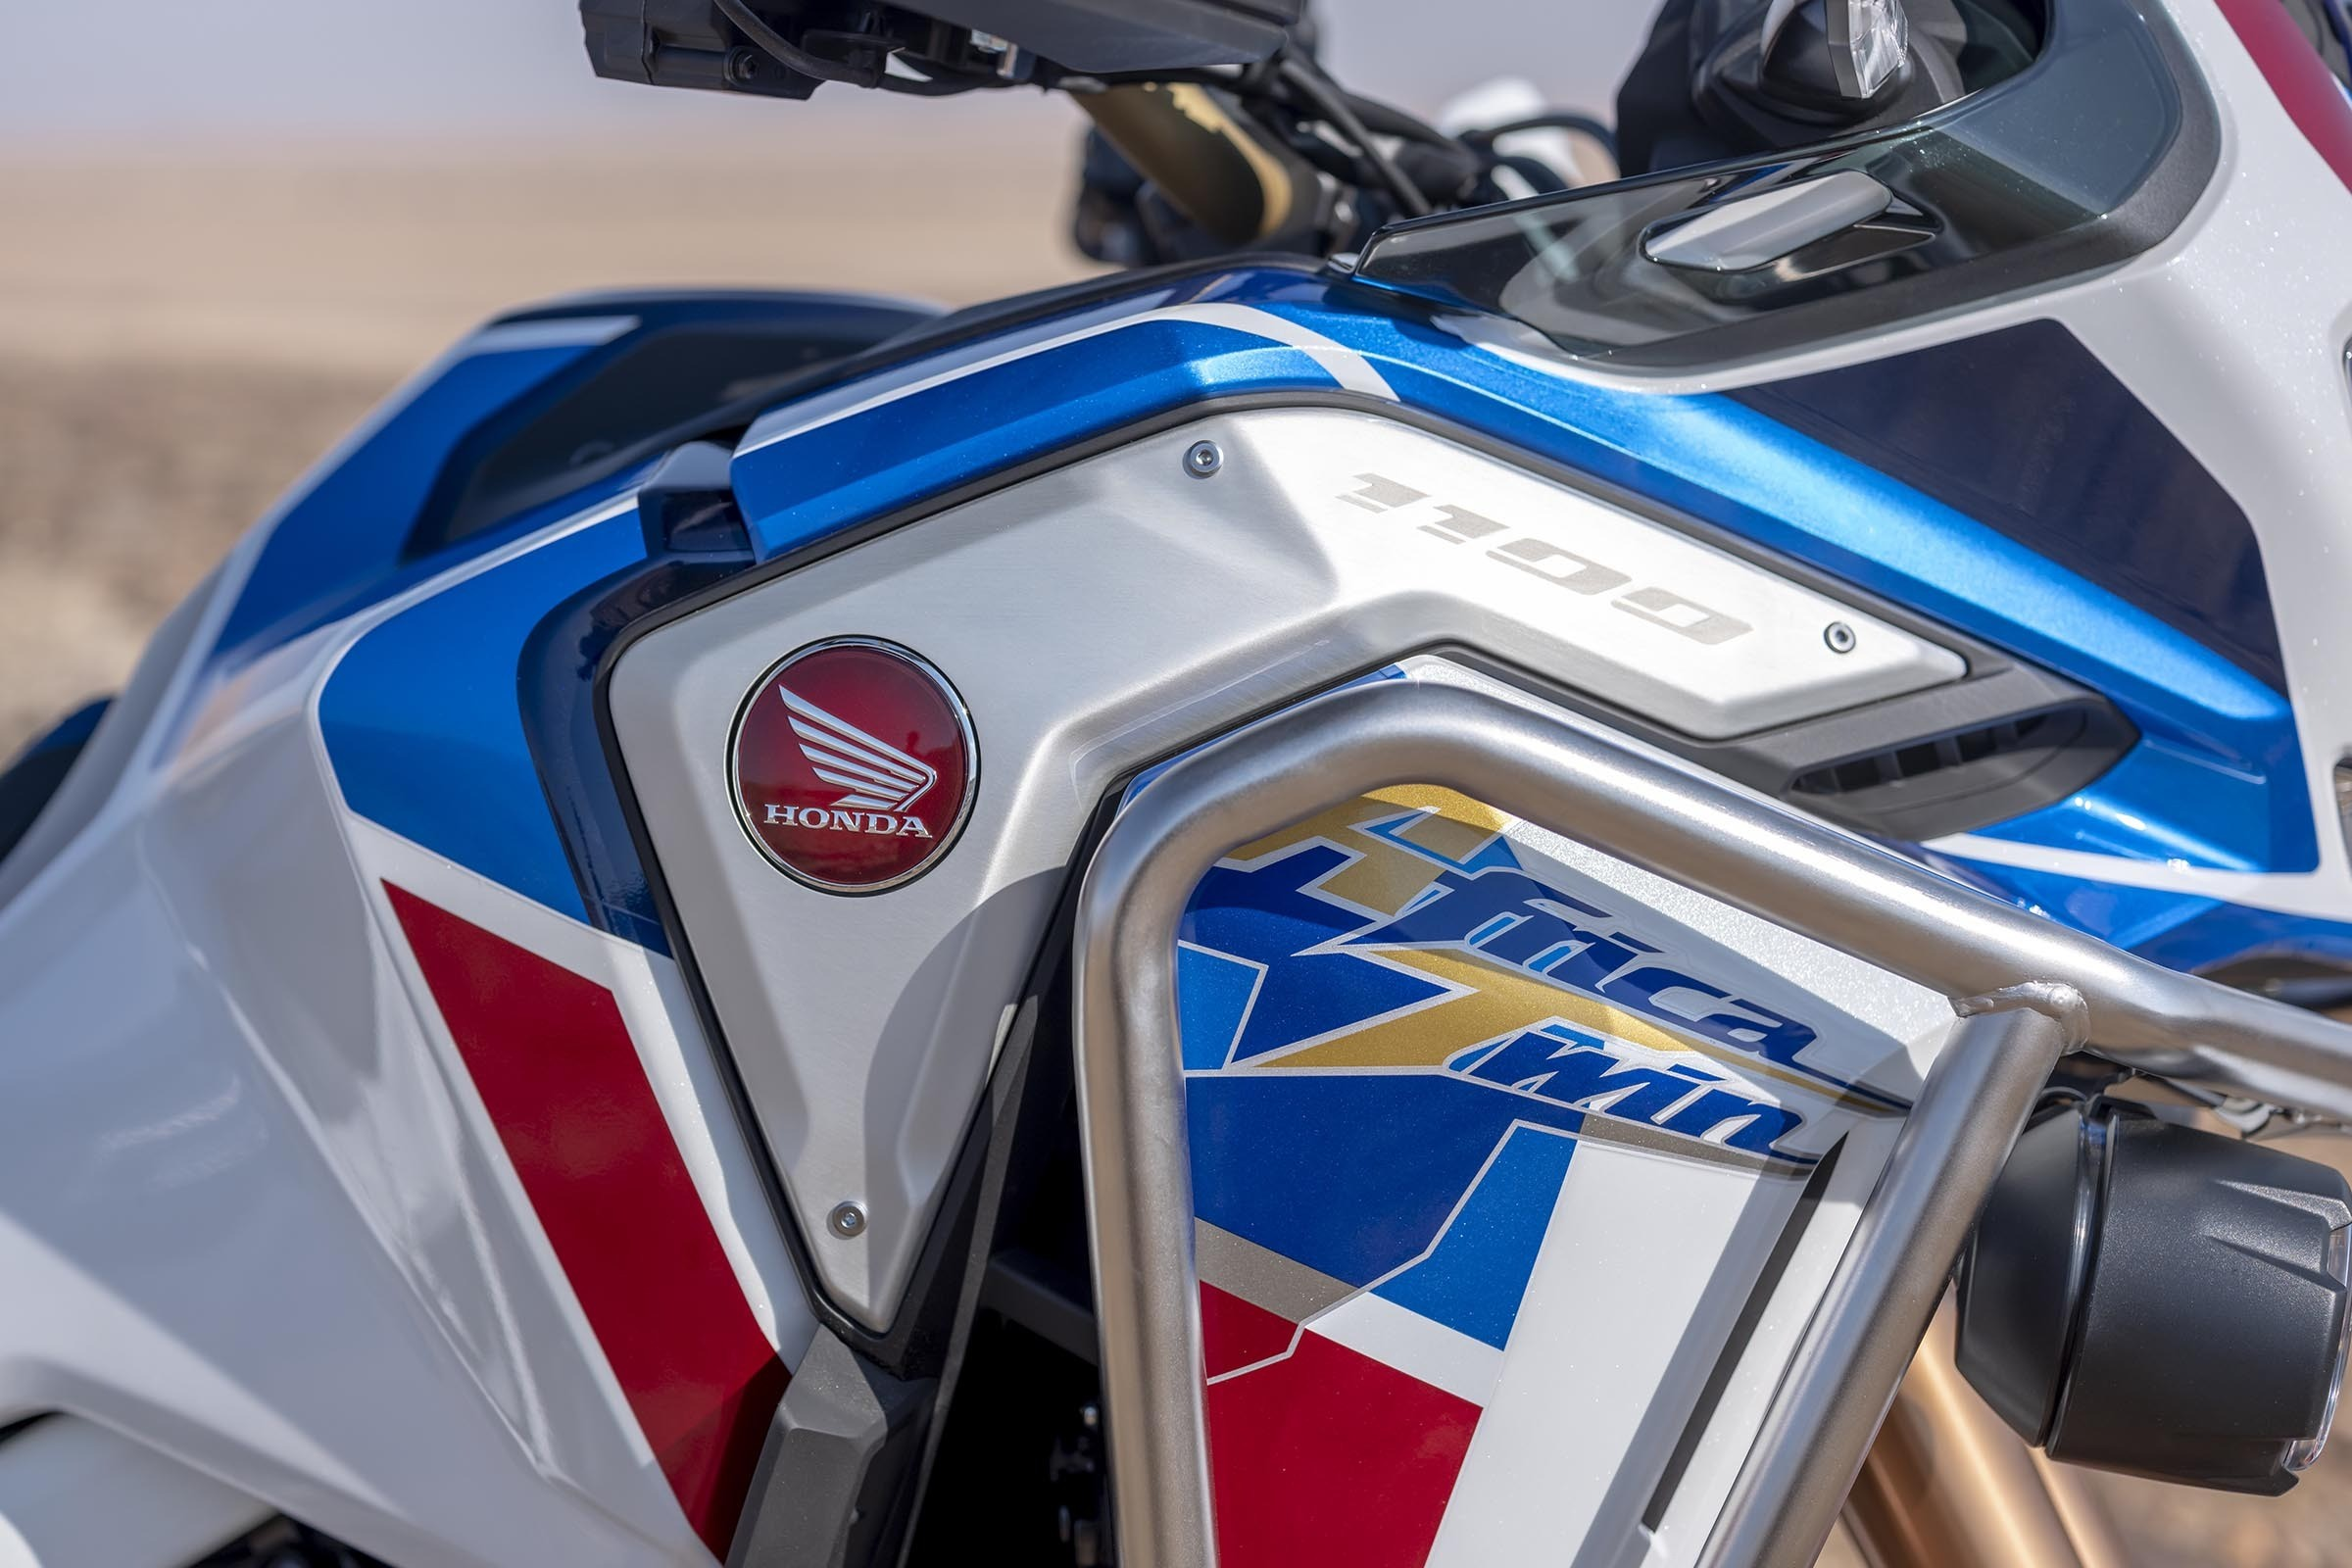 honda-petitioned-to-bring-android-auto-to-africa-twin-bikes_5.jpg